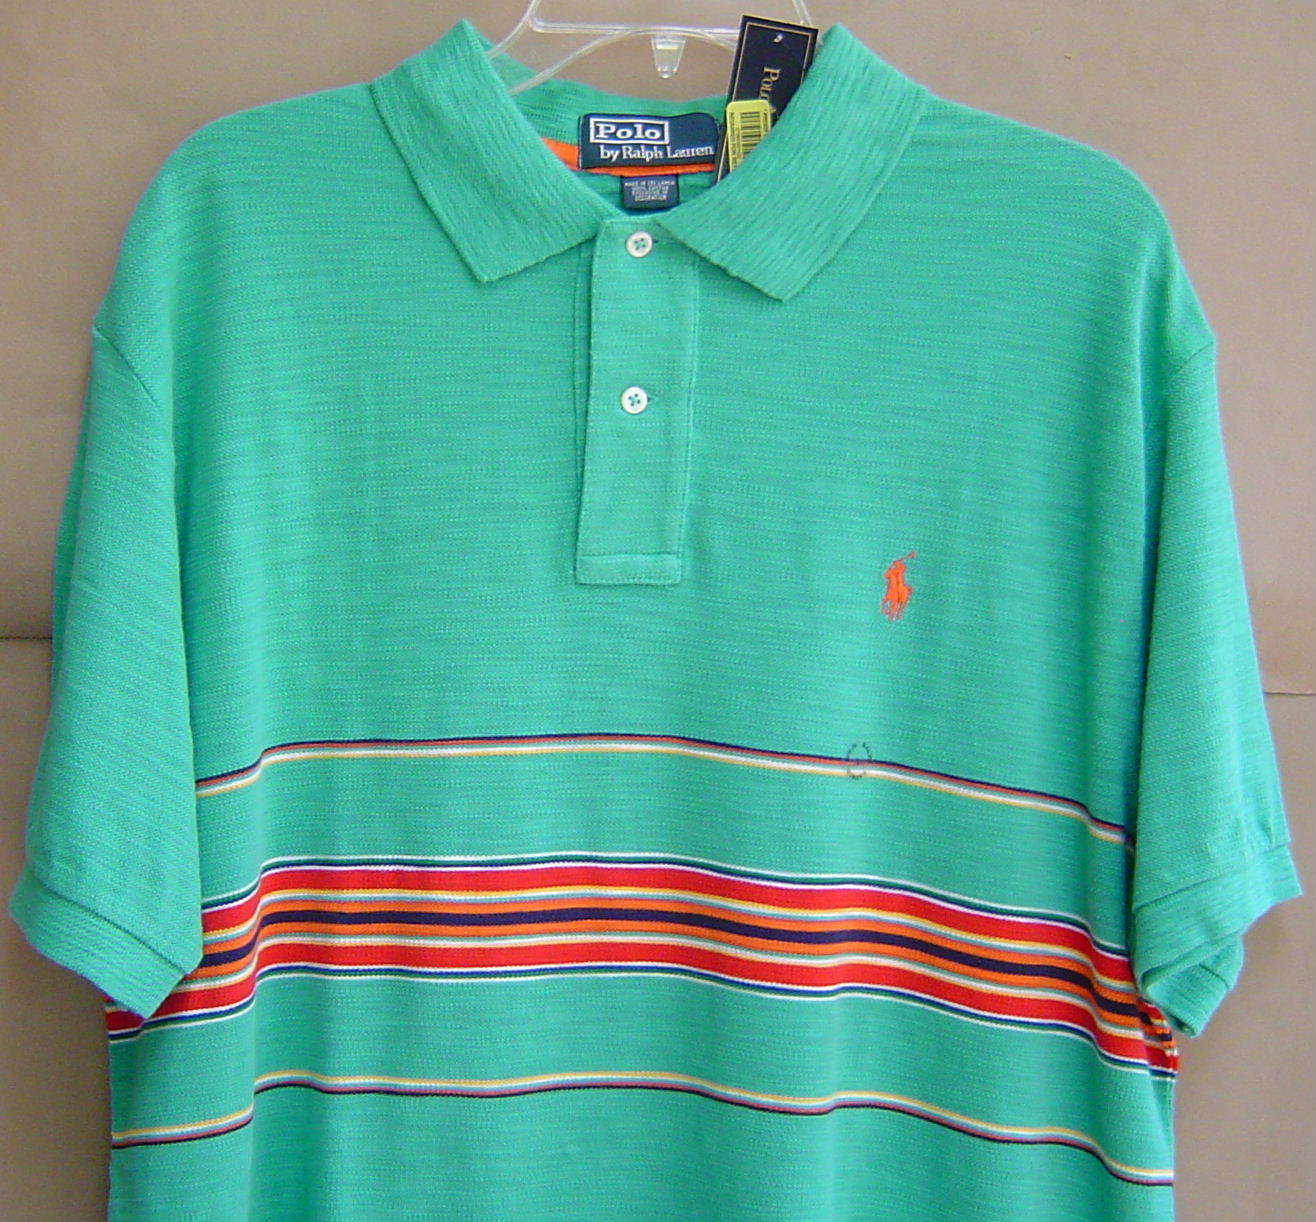 NWT  POLO RALPH LAUREN L Classic Fit STRIPED PIQUE SHIRT Bright Teal 0460248